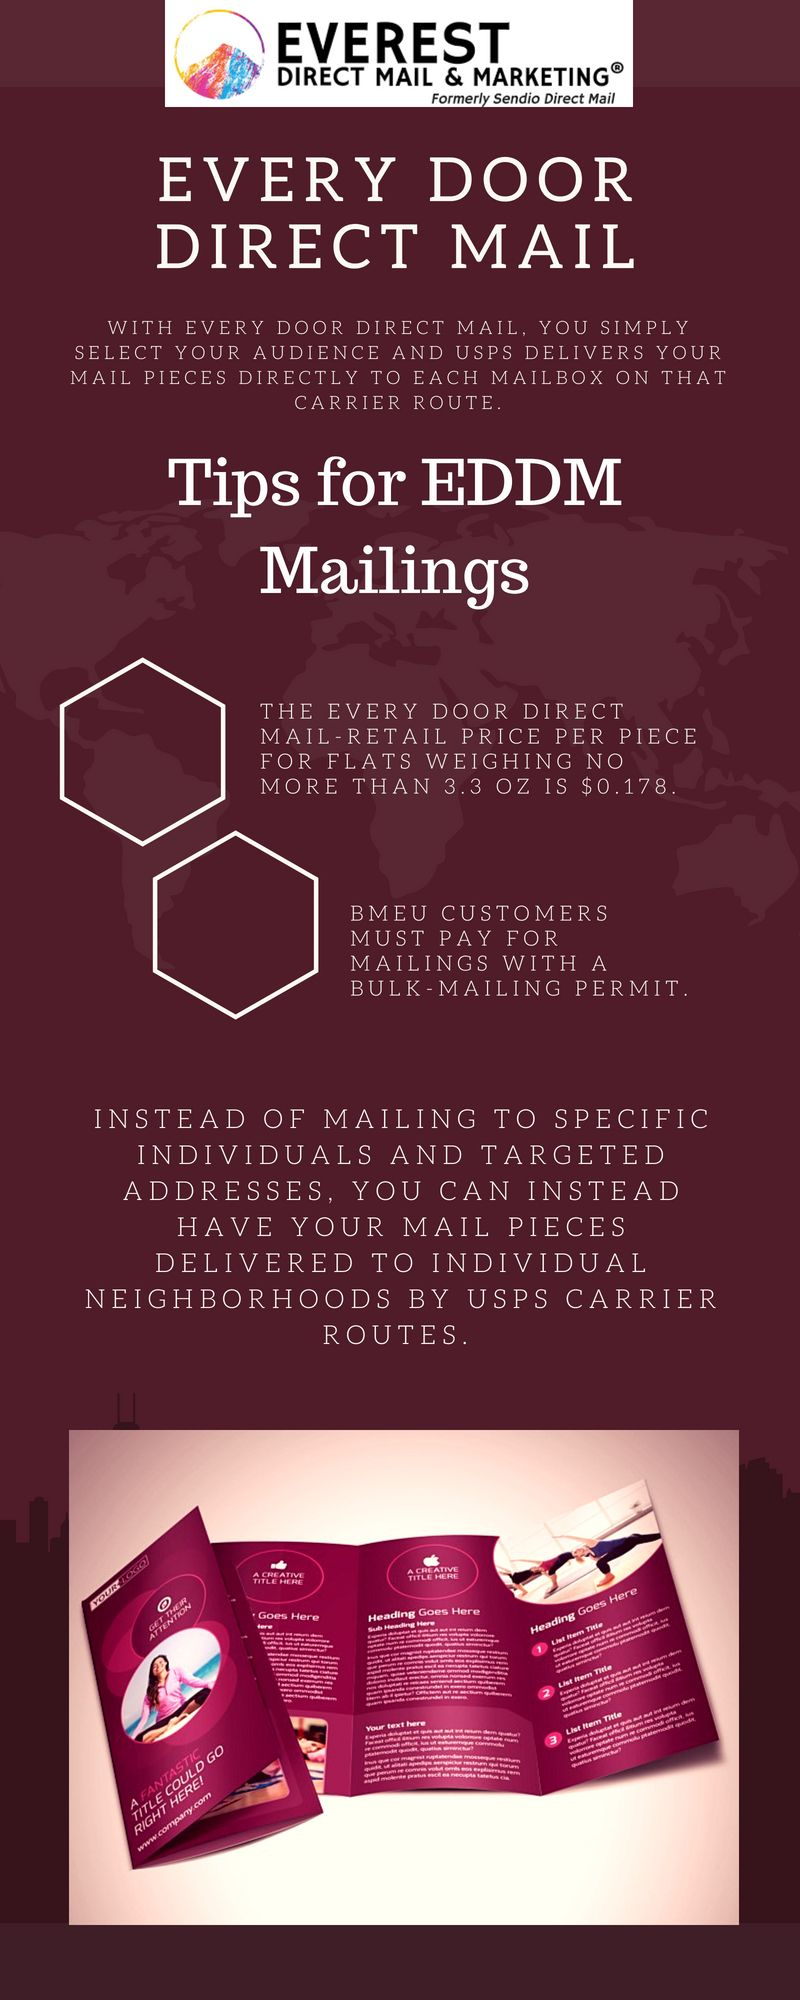 Every Door Direct Mail Review Your Carrier Route Selections Direct Mail Map Diagram